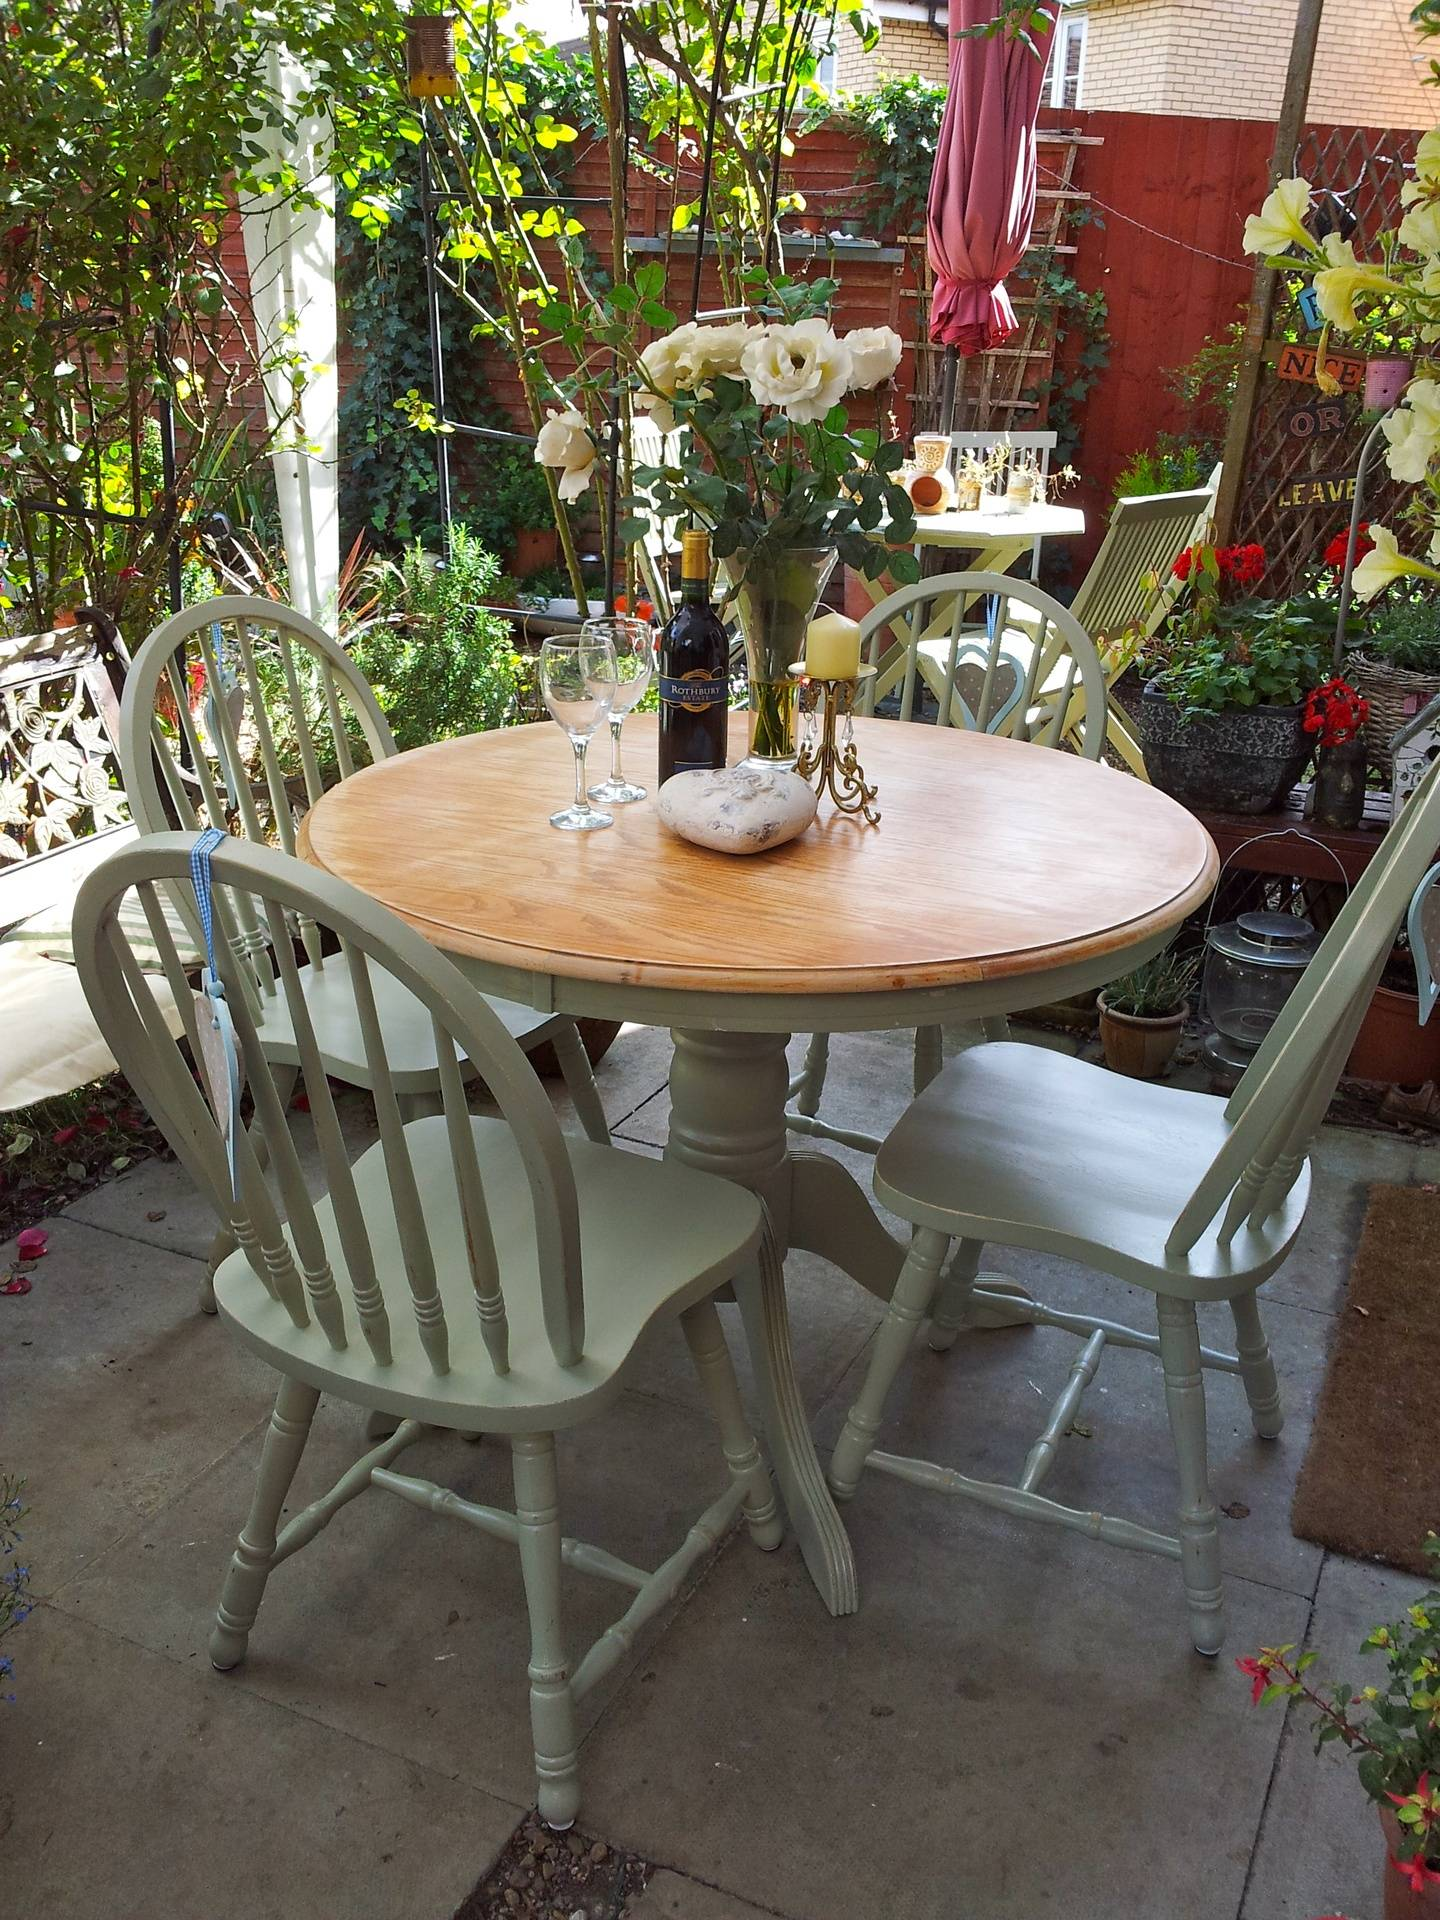 Round Table With Pedestal Base & 4 Chairs Painted in F & B Old White